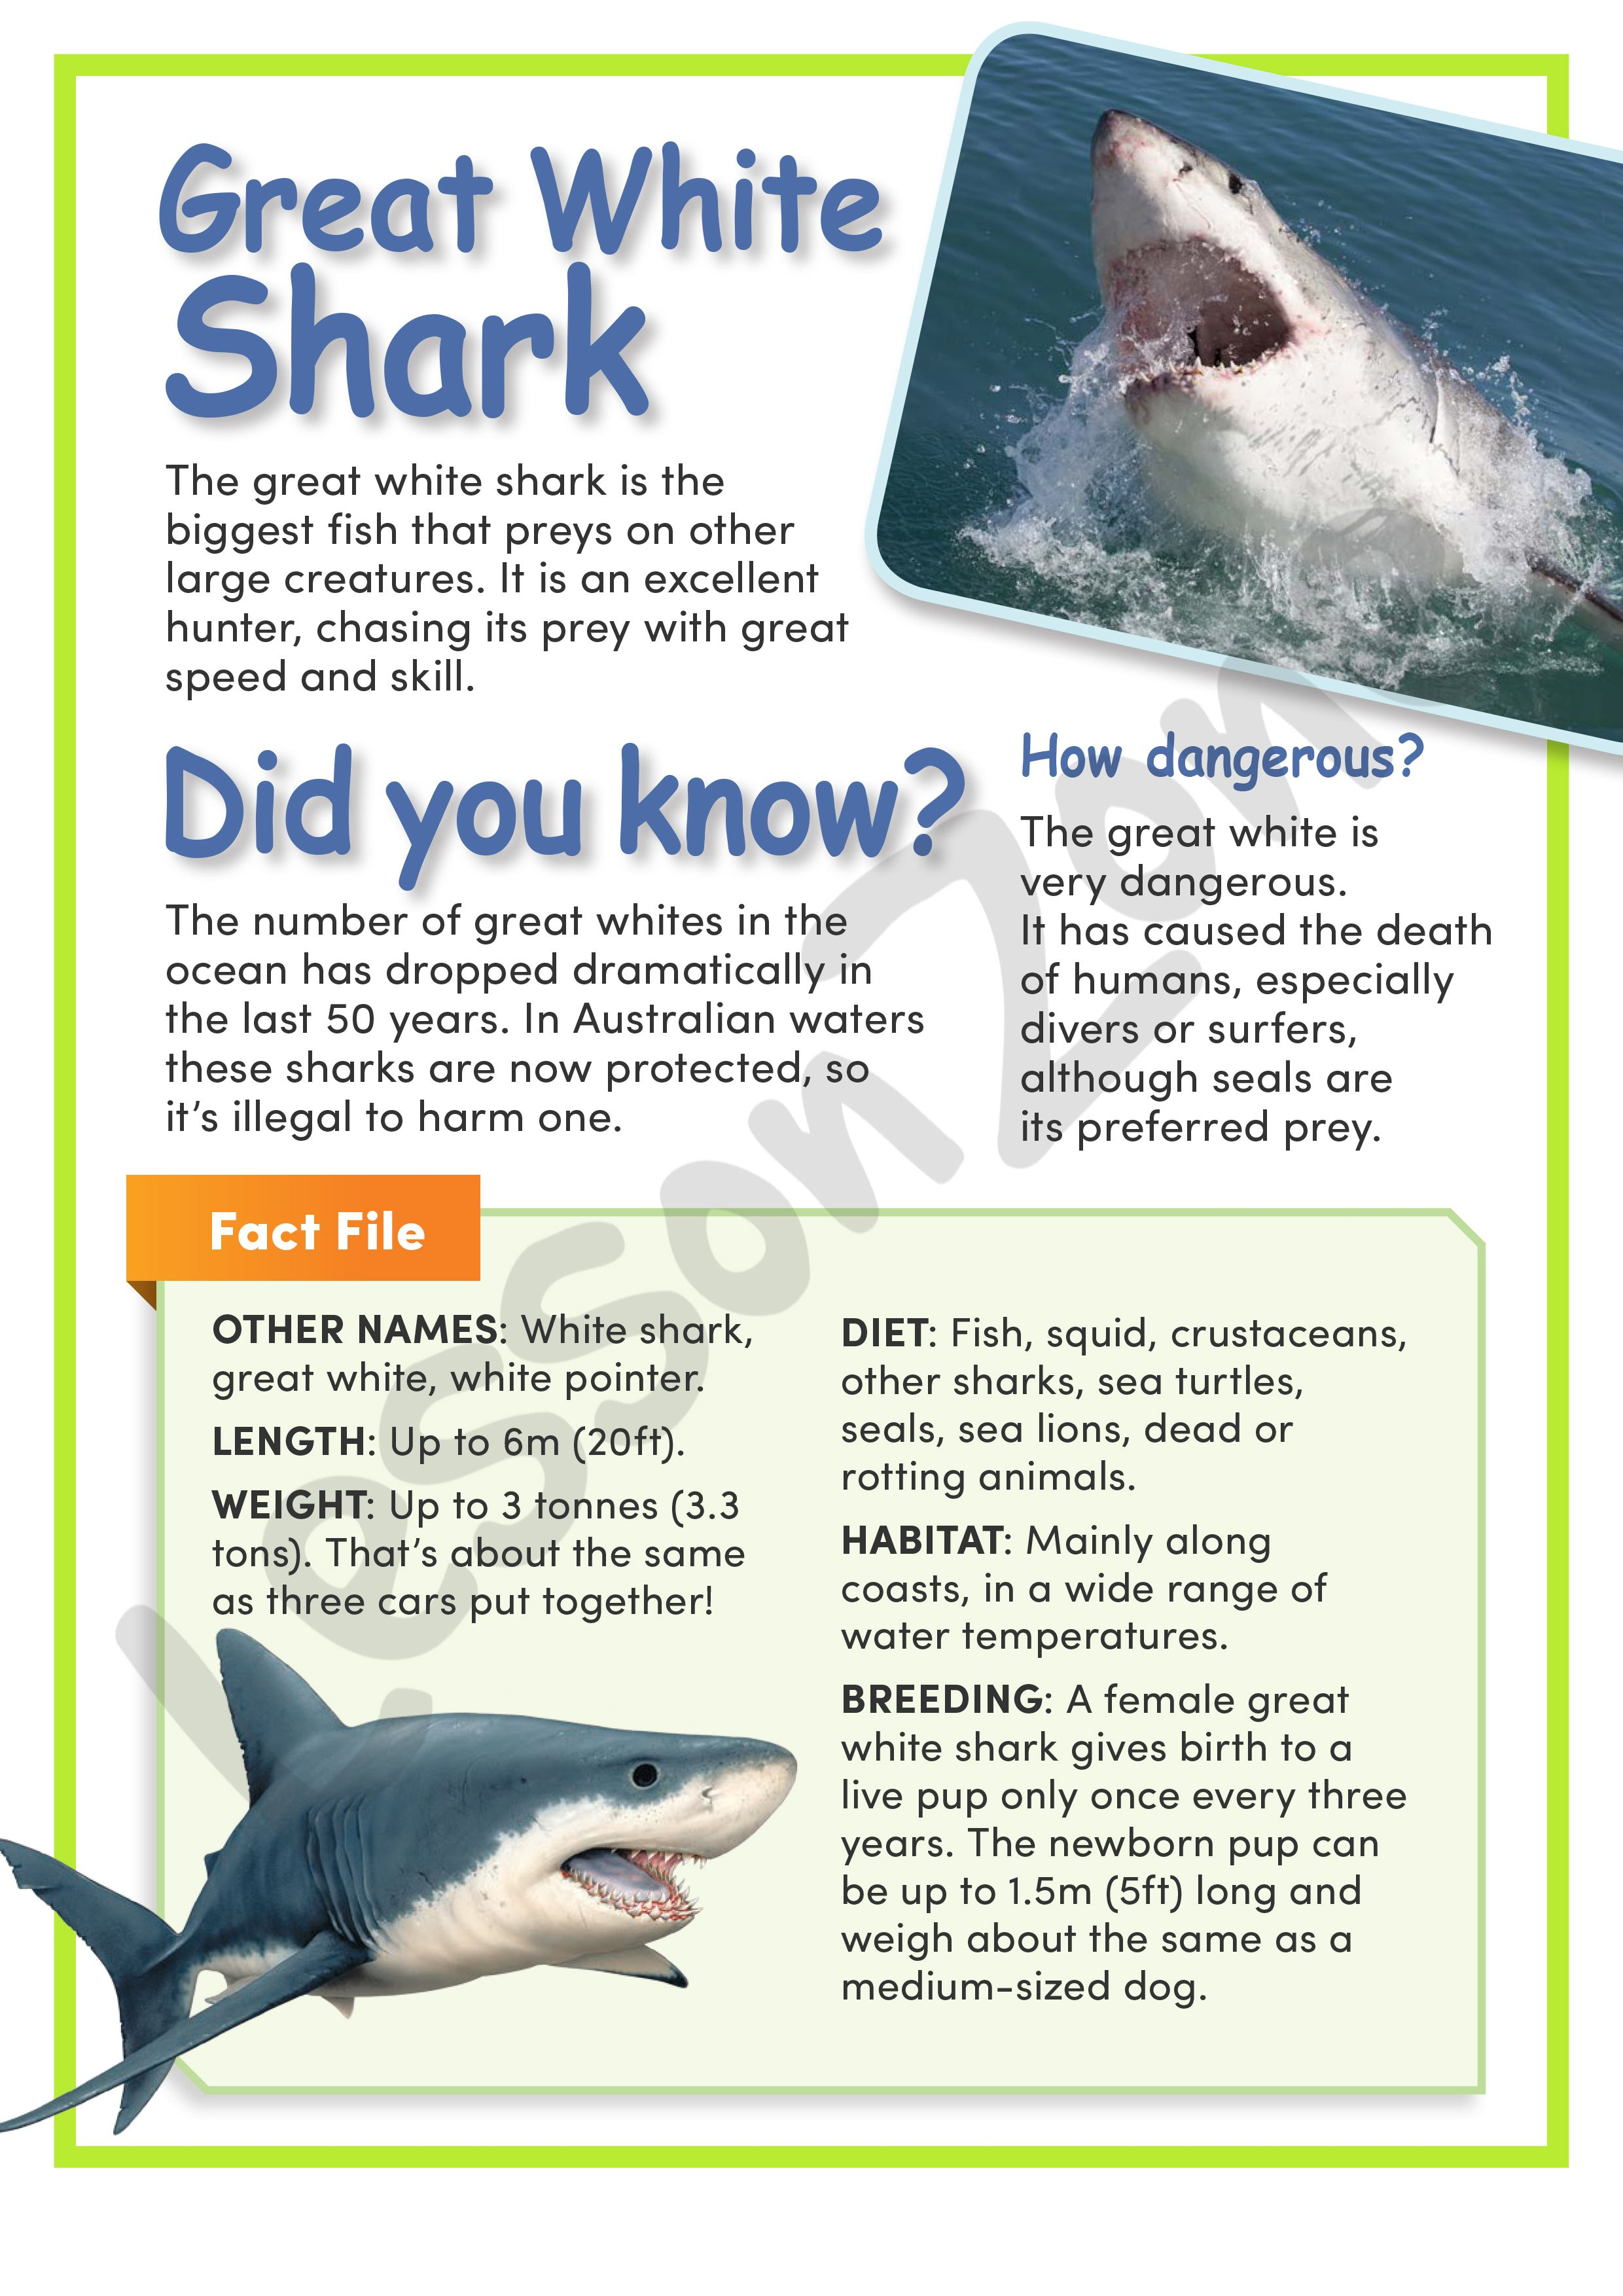 This article, 'Great White Shark' provides information ...